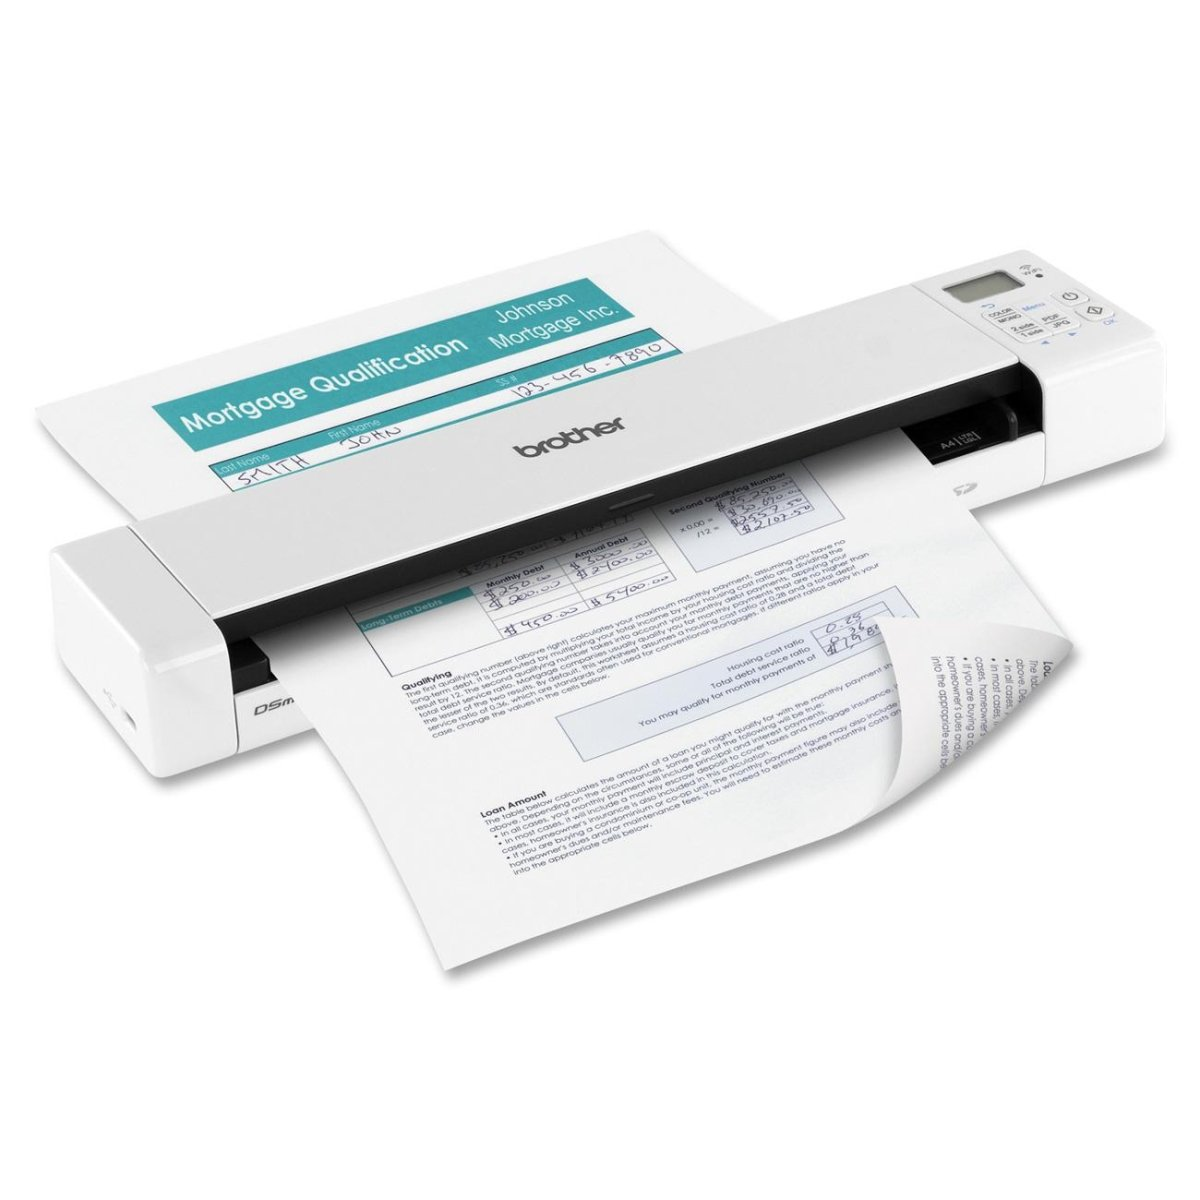 Brother DS-920DW MBL Scanner BRTDS920DW